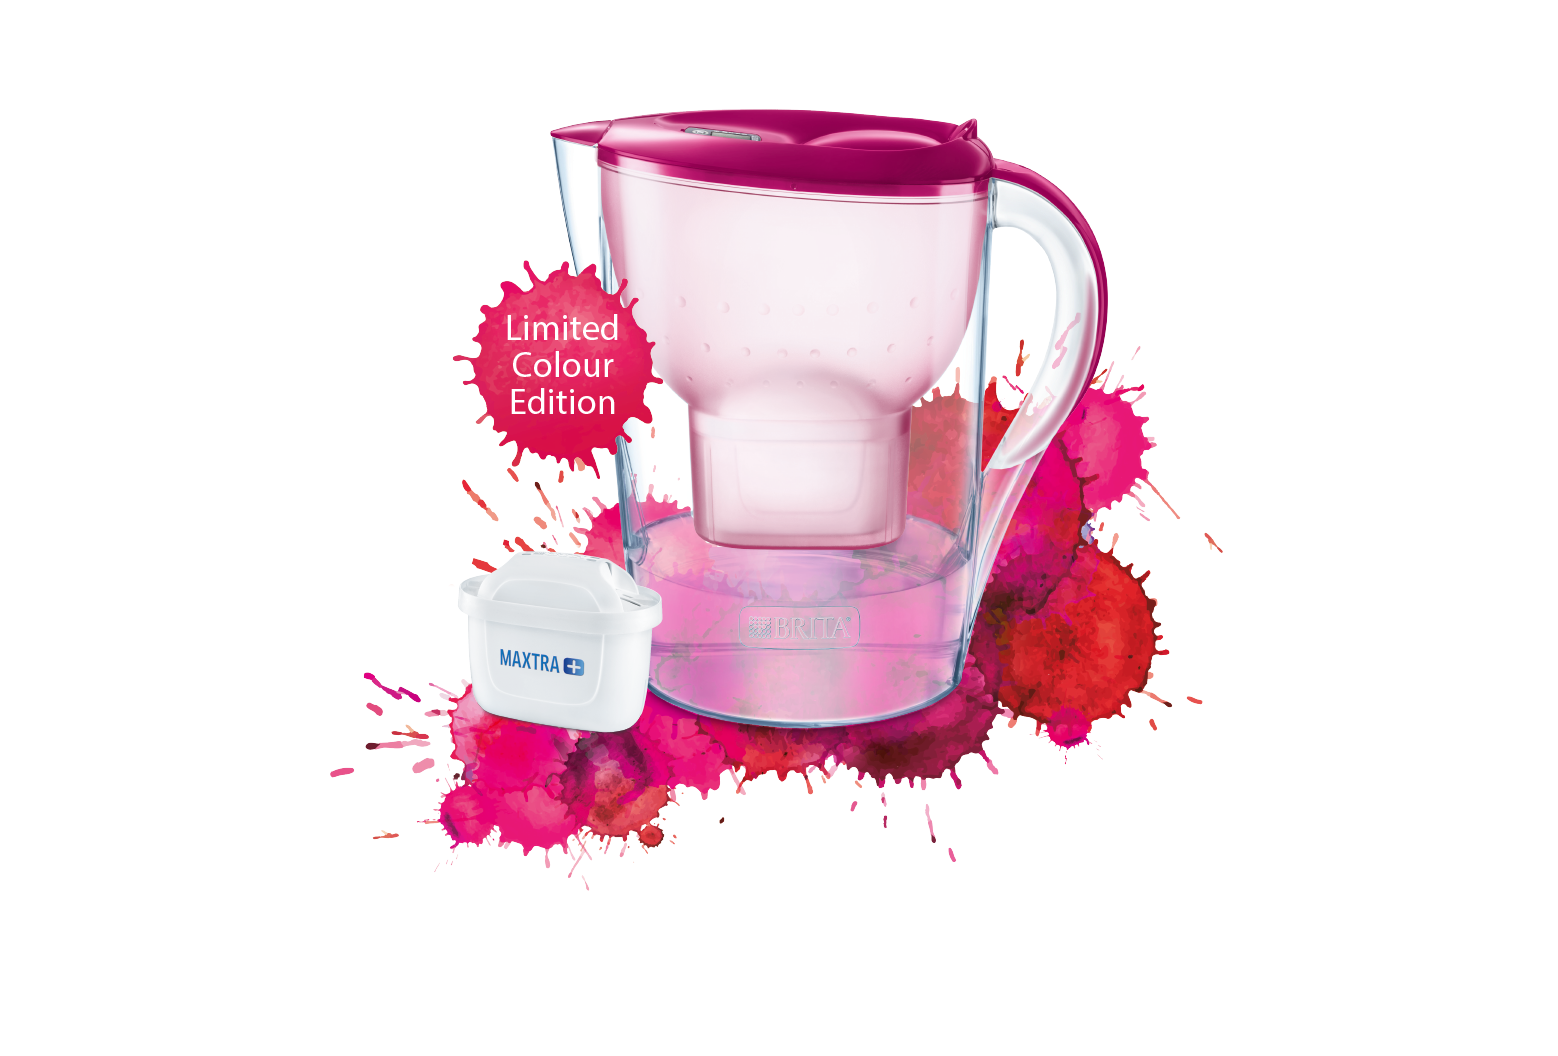 BRITA fill&enjoy Marella Starlight Edition